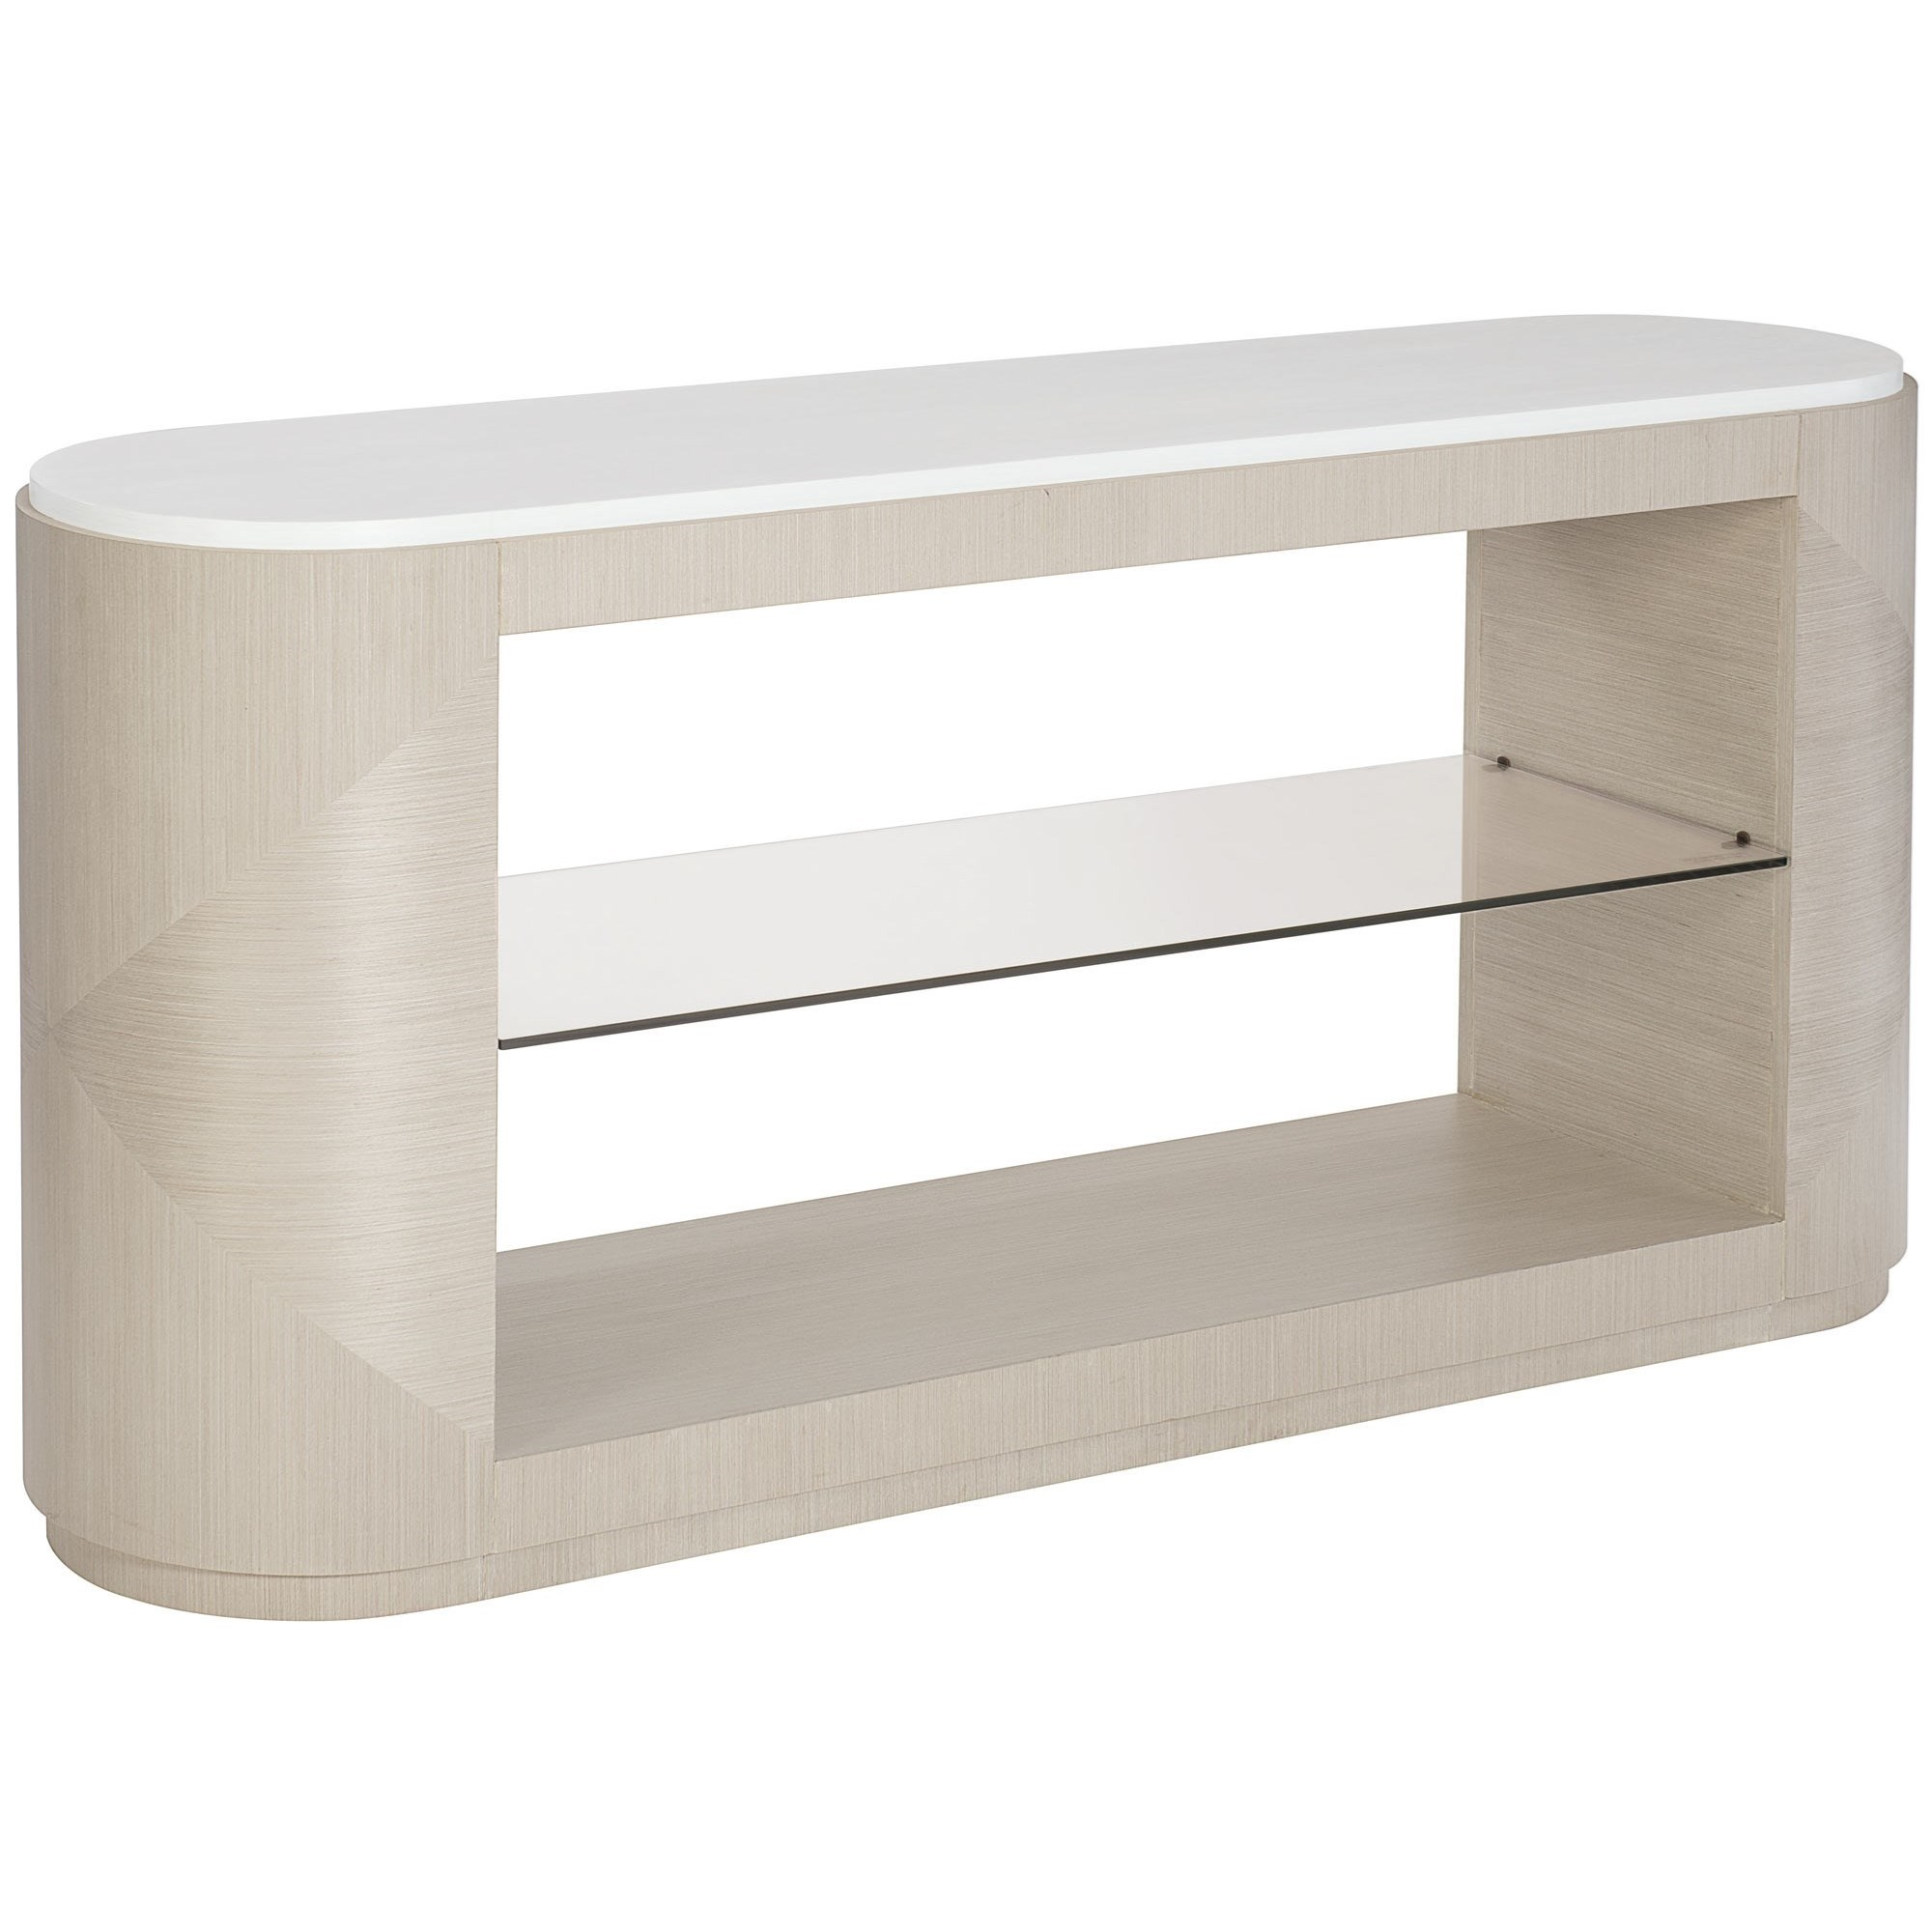 Bernhardt Axiom 381 910 Contemporary Console Table With 1